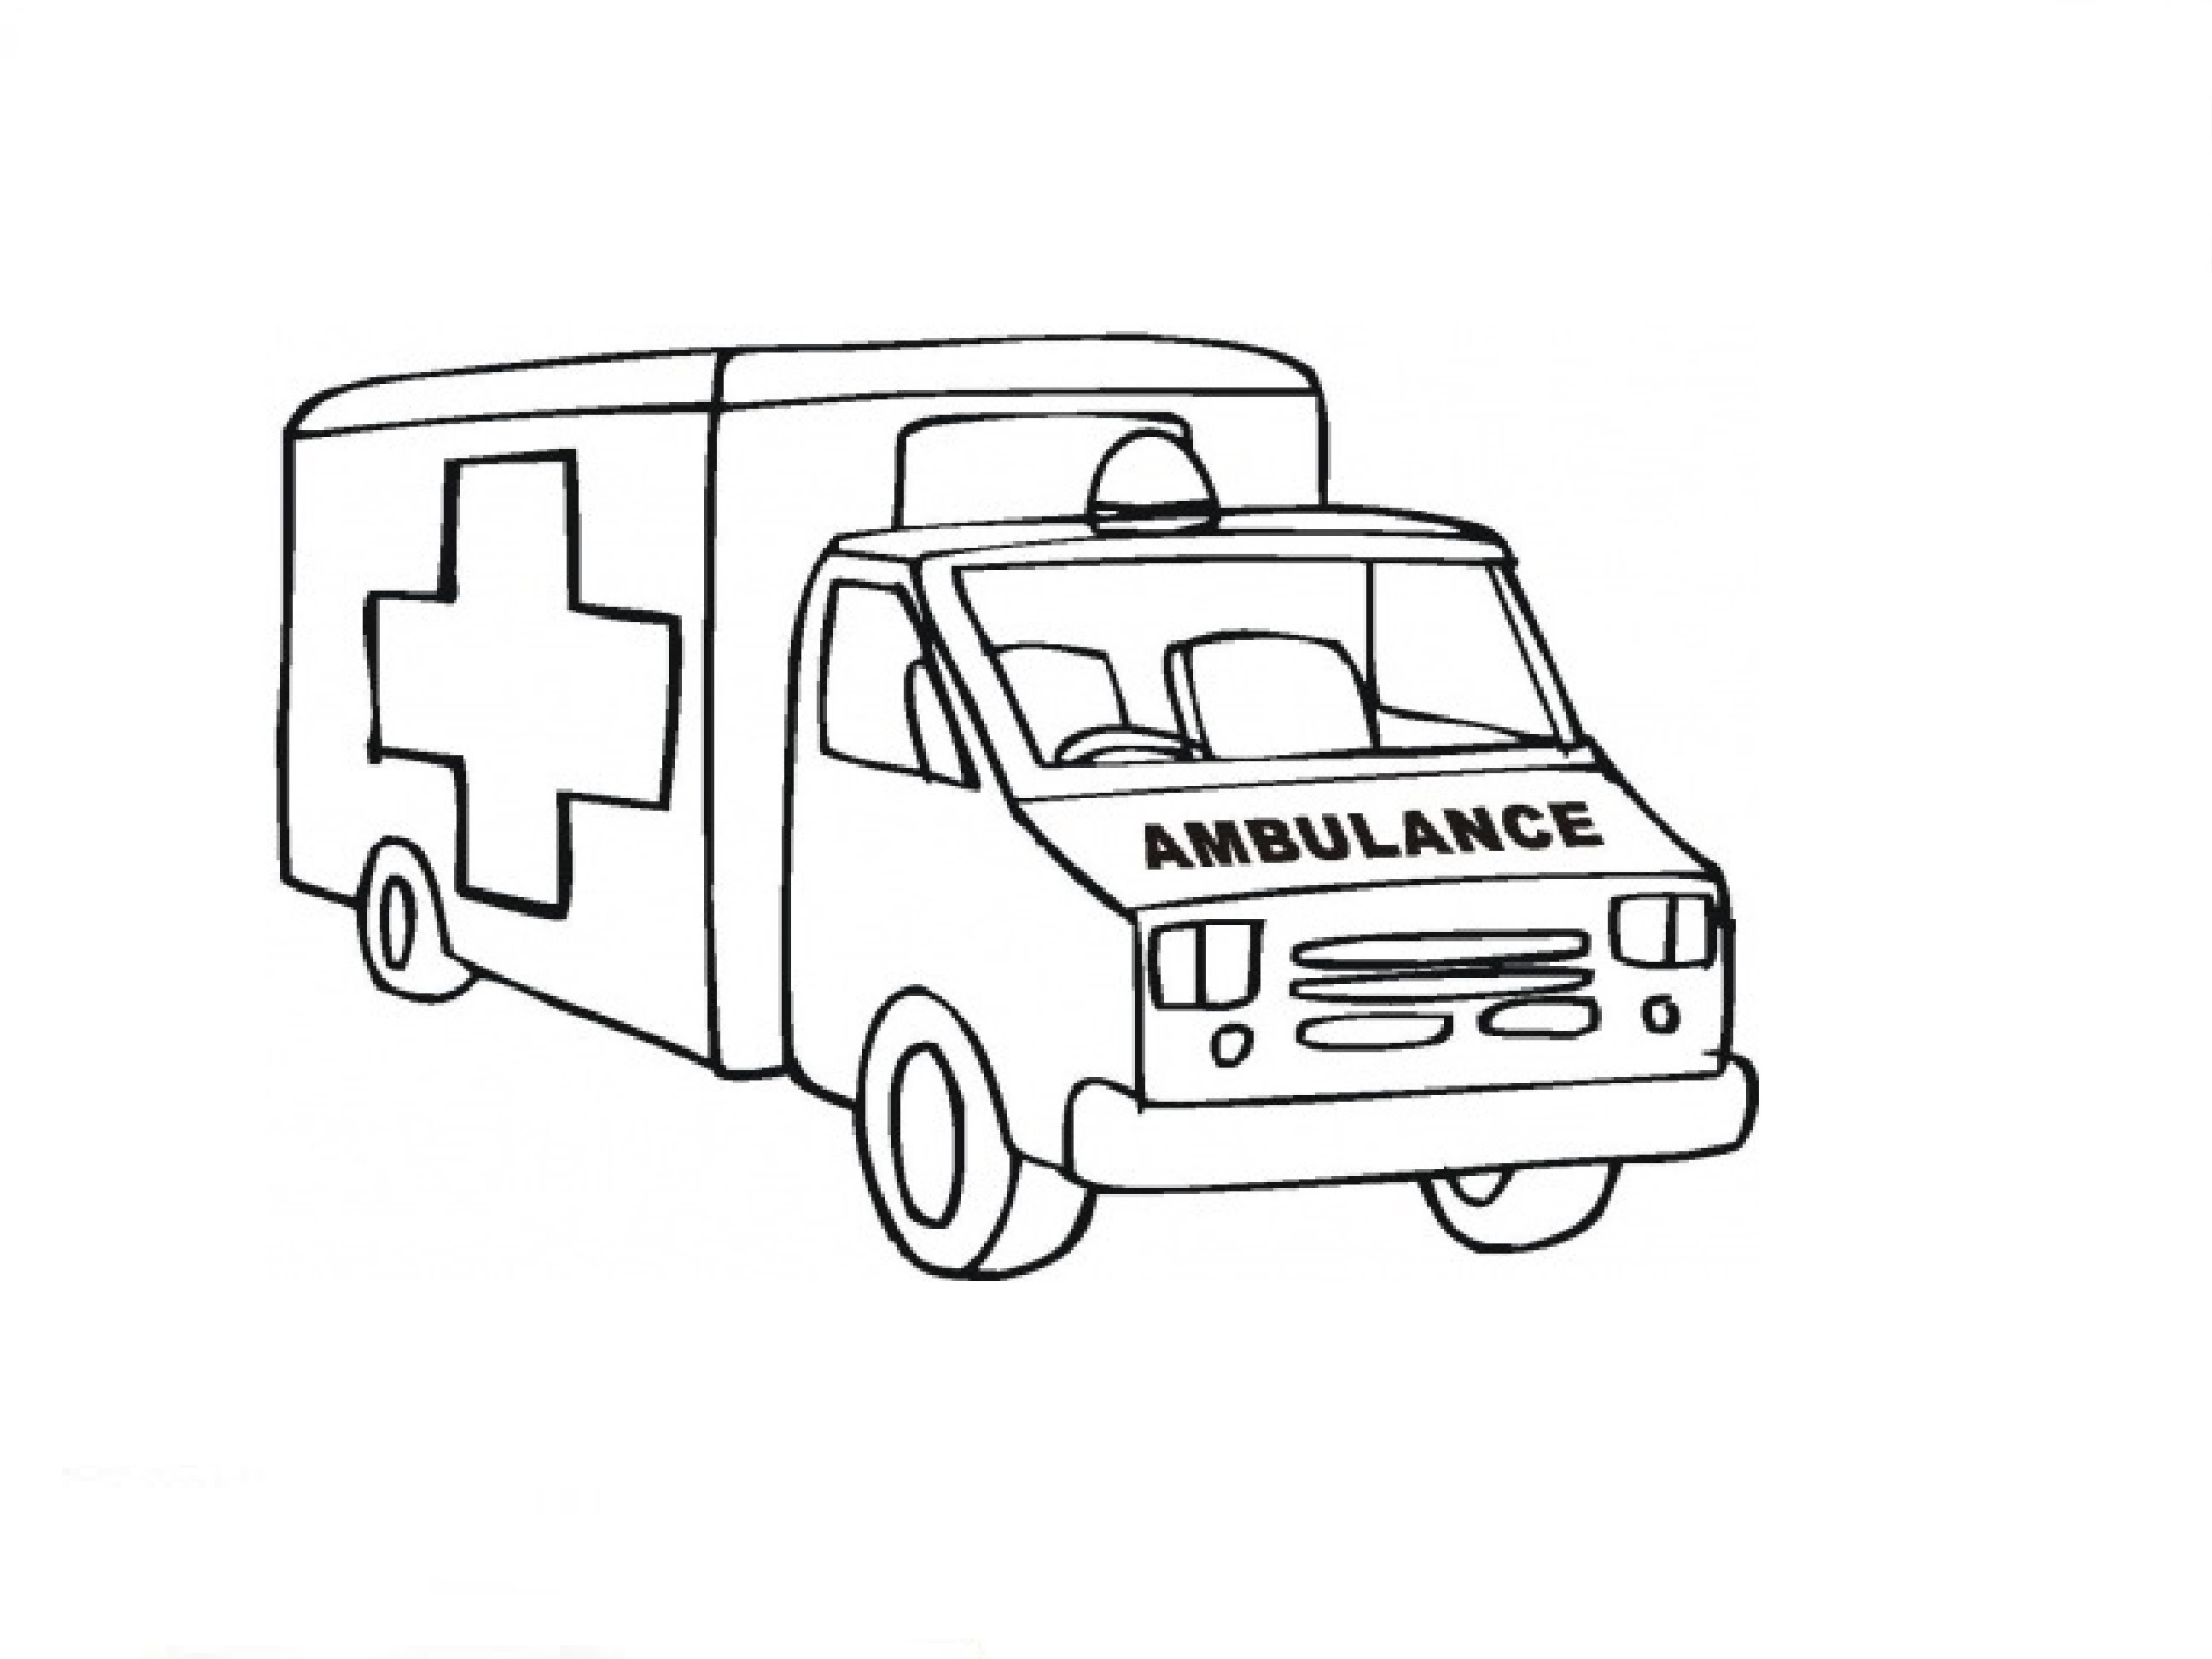 Ambulance Drawing at GetDrawings